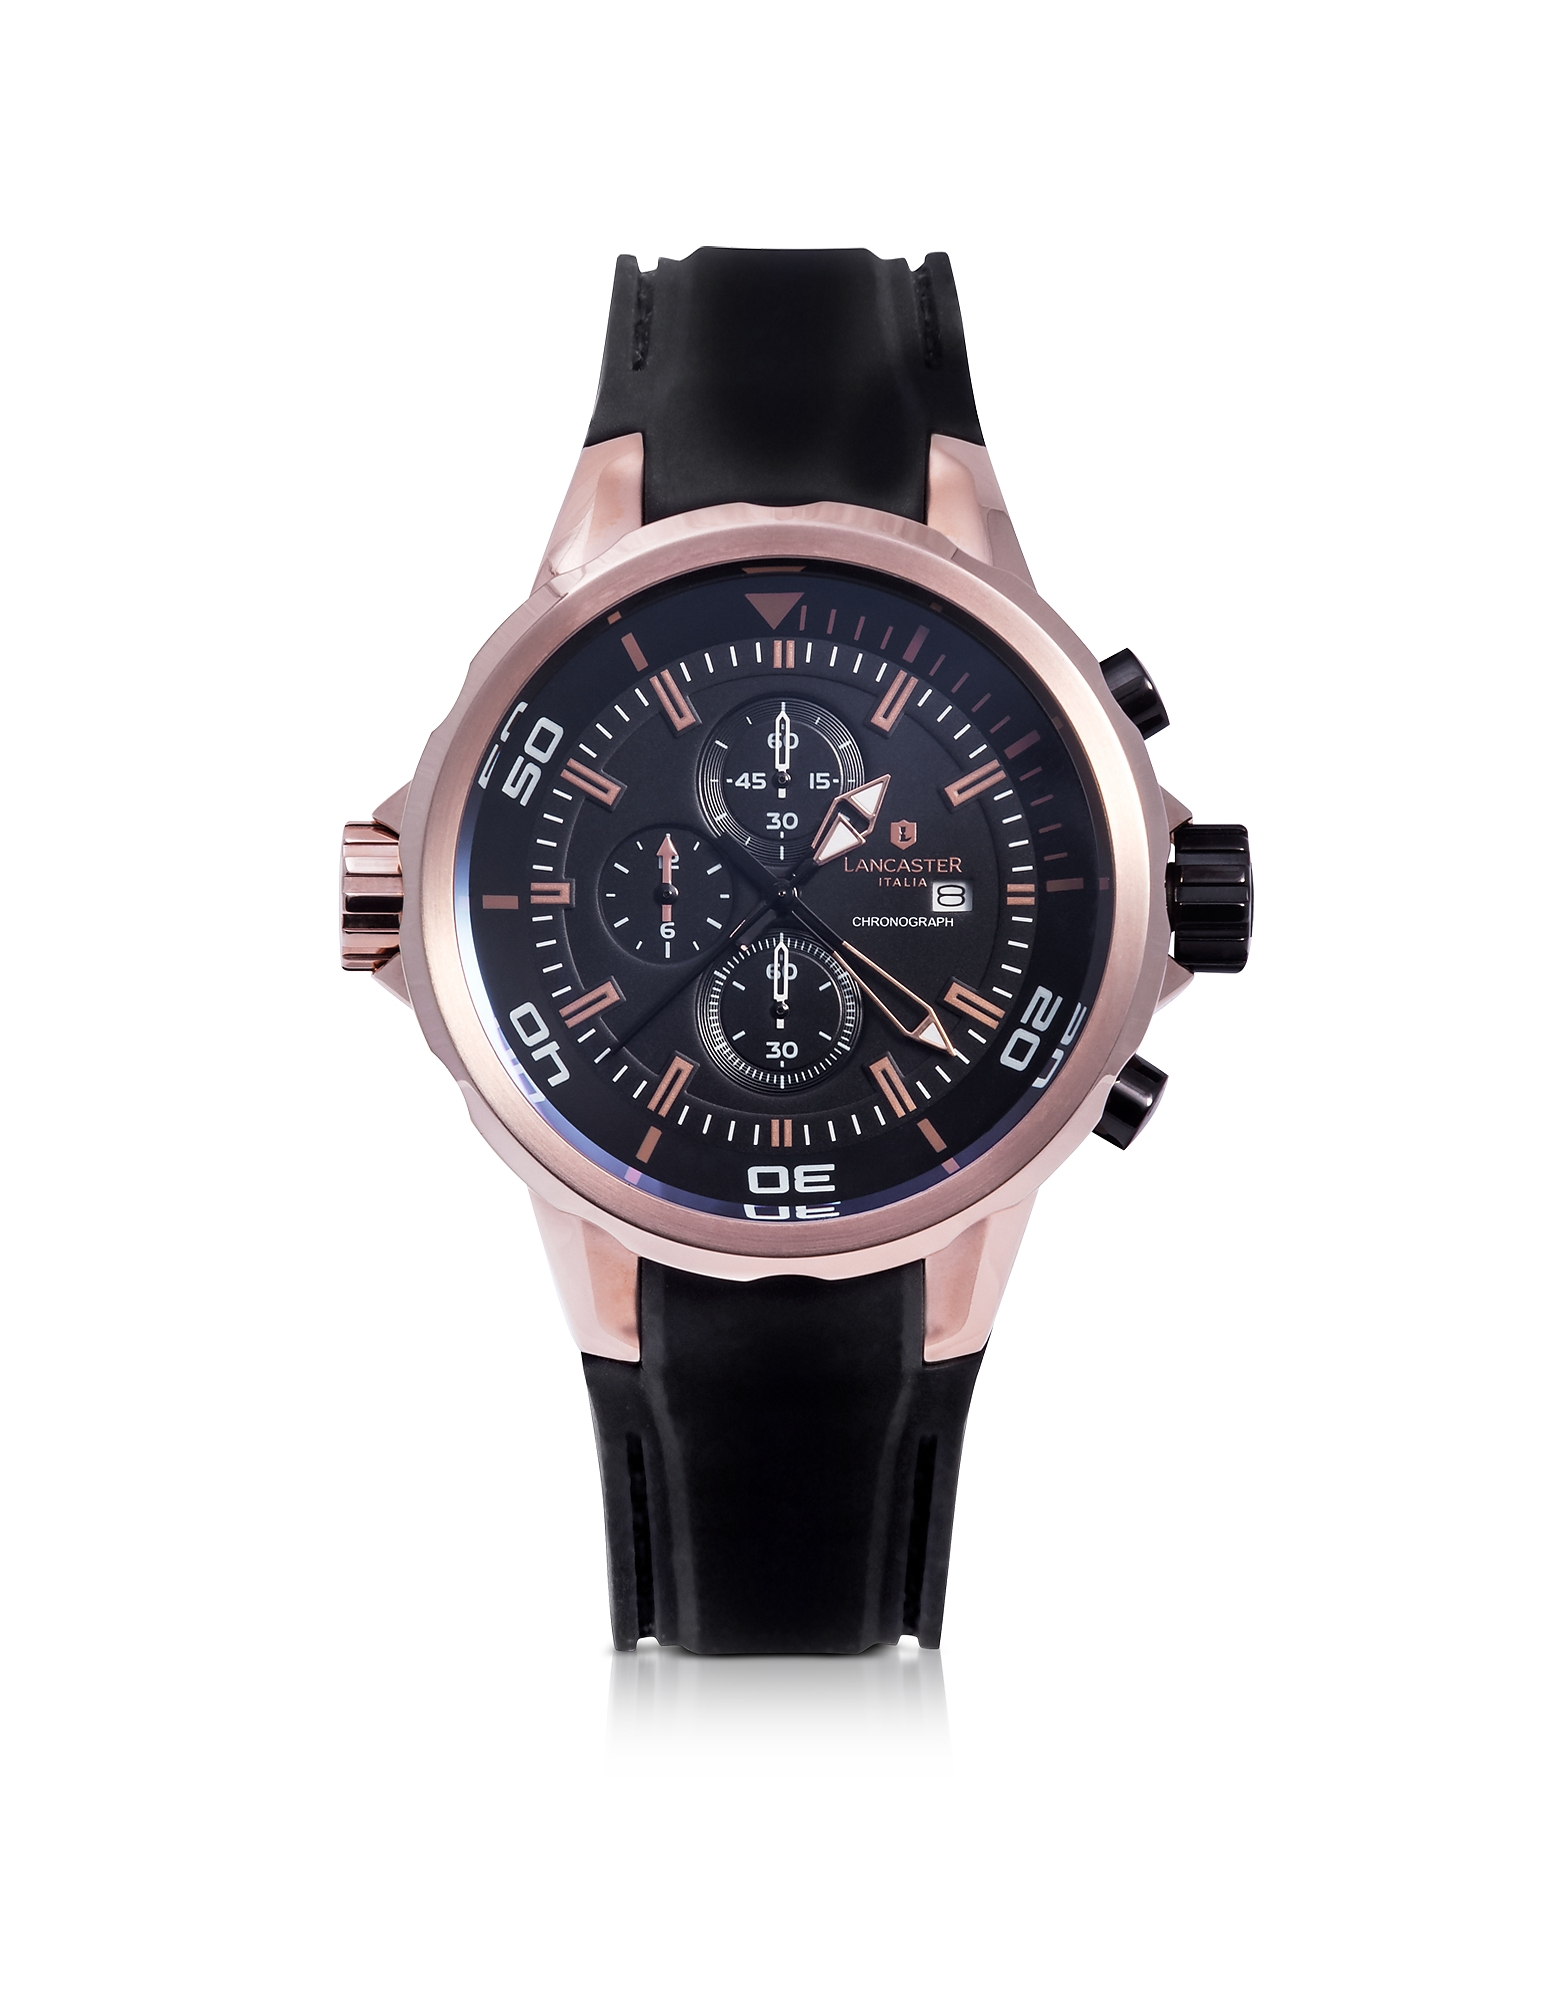 Lancaster Men's Watches, Space Shuttle Rose Gold PVD Stainless Steel Chronograph Watch